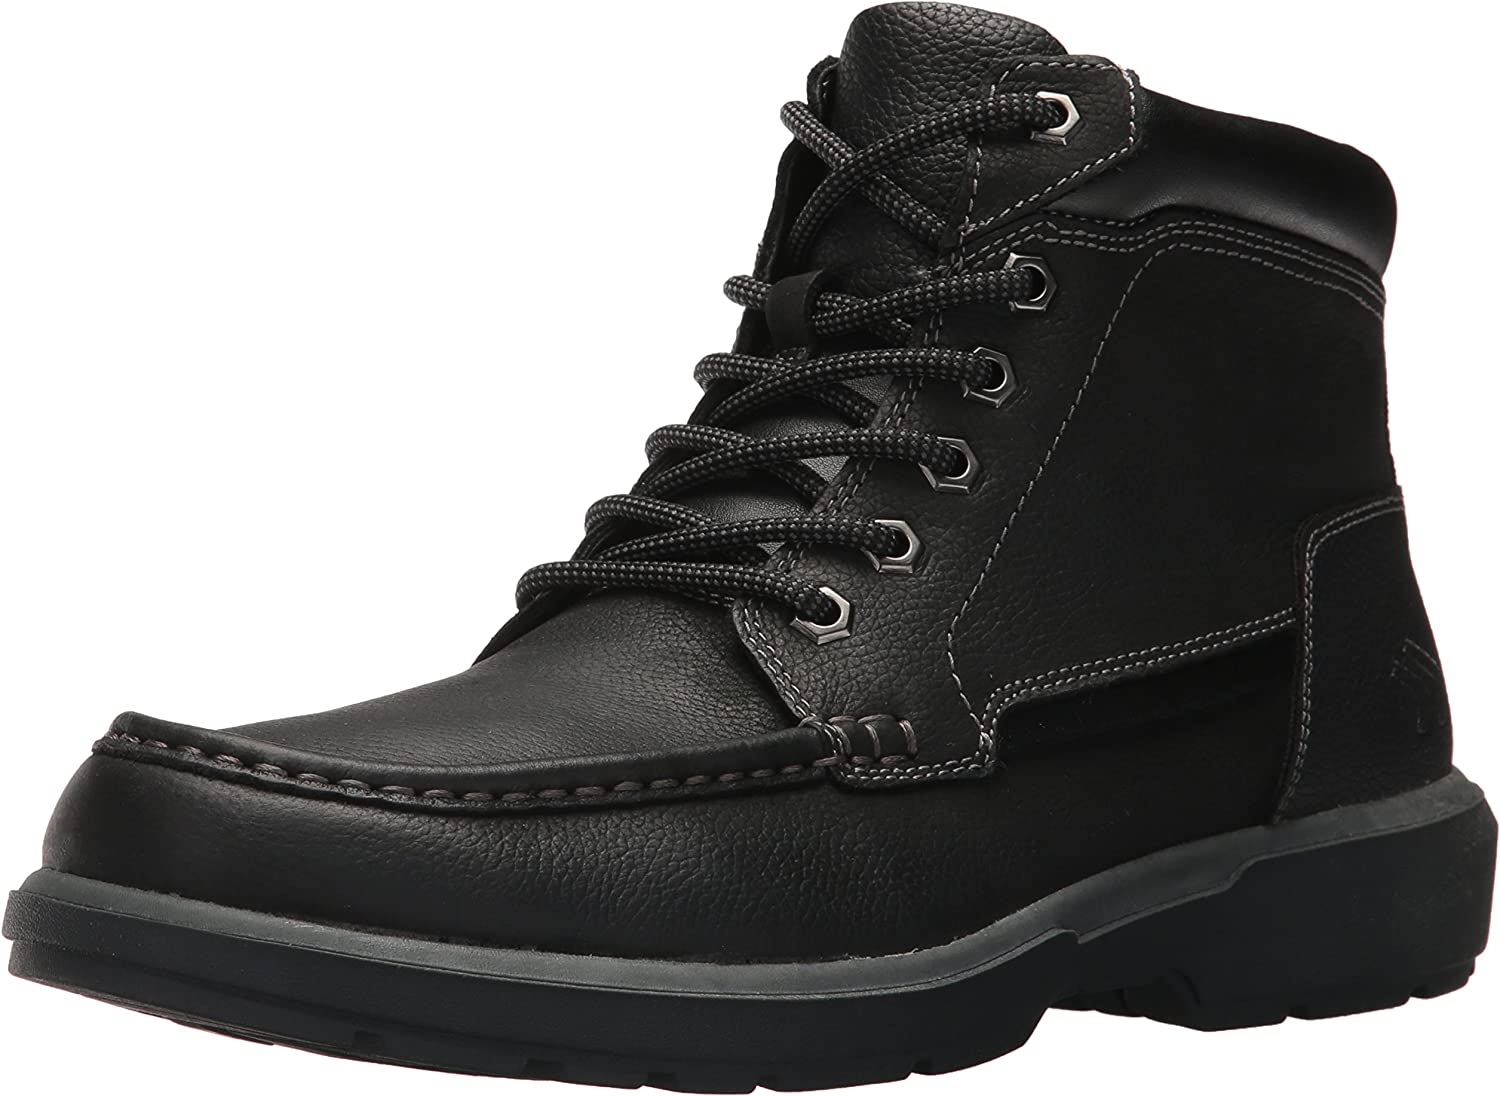 Dr. Scholl's shoes Mens Mateo Chukka Boot